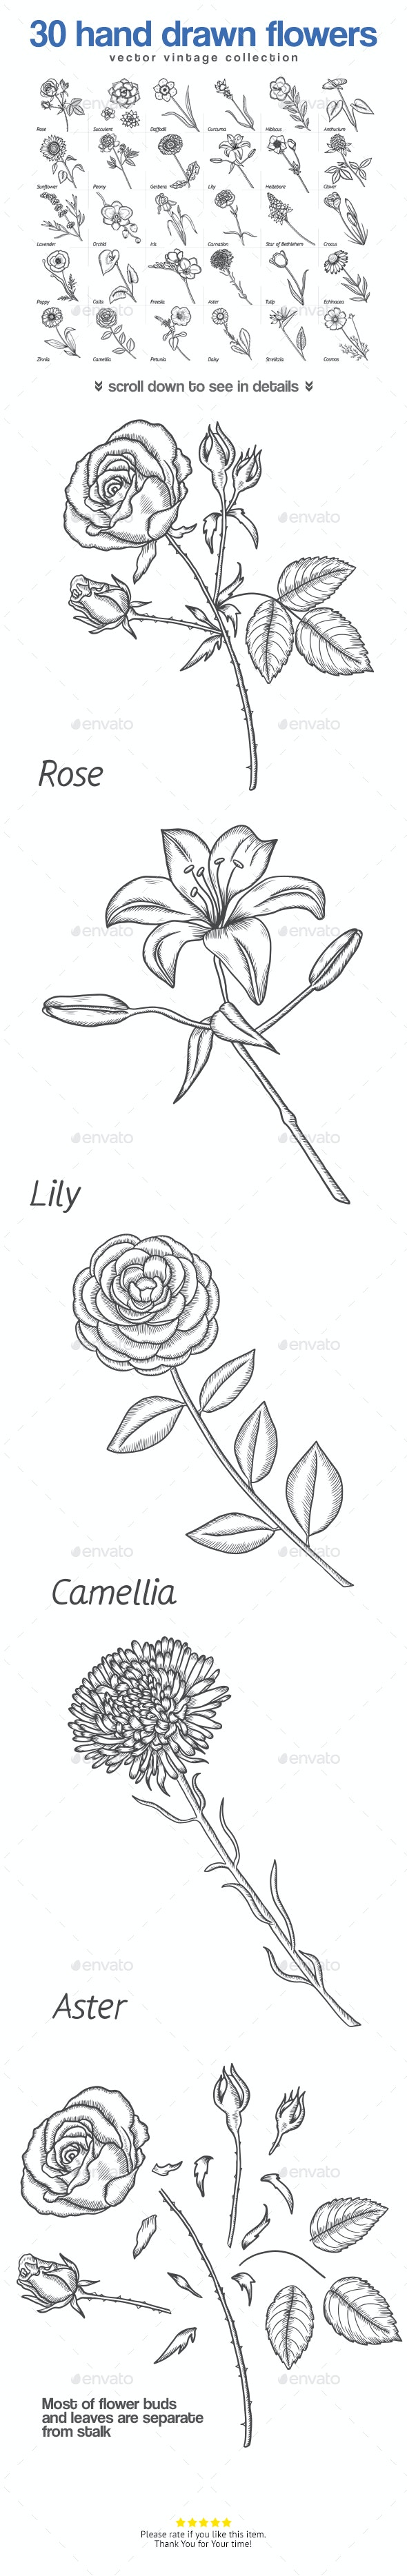 30 Hand Drawn Flowers - Flowers & Plants Nature